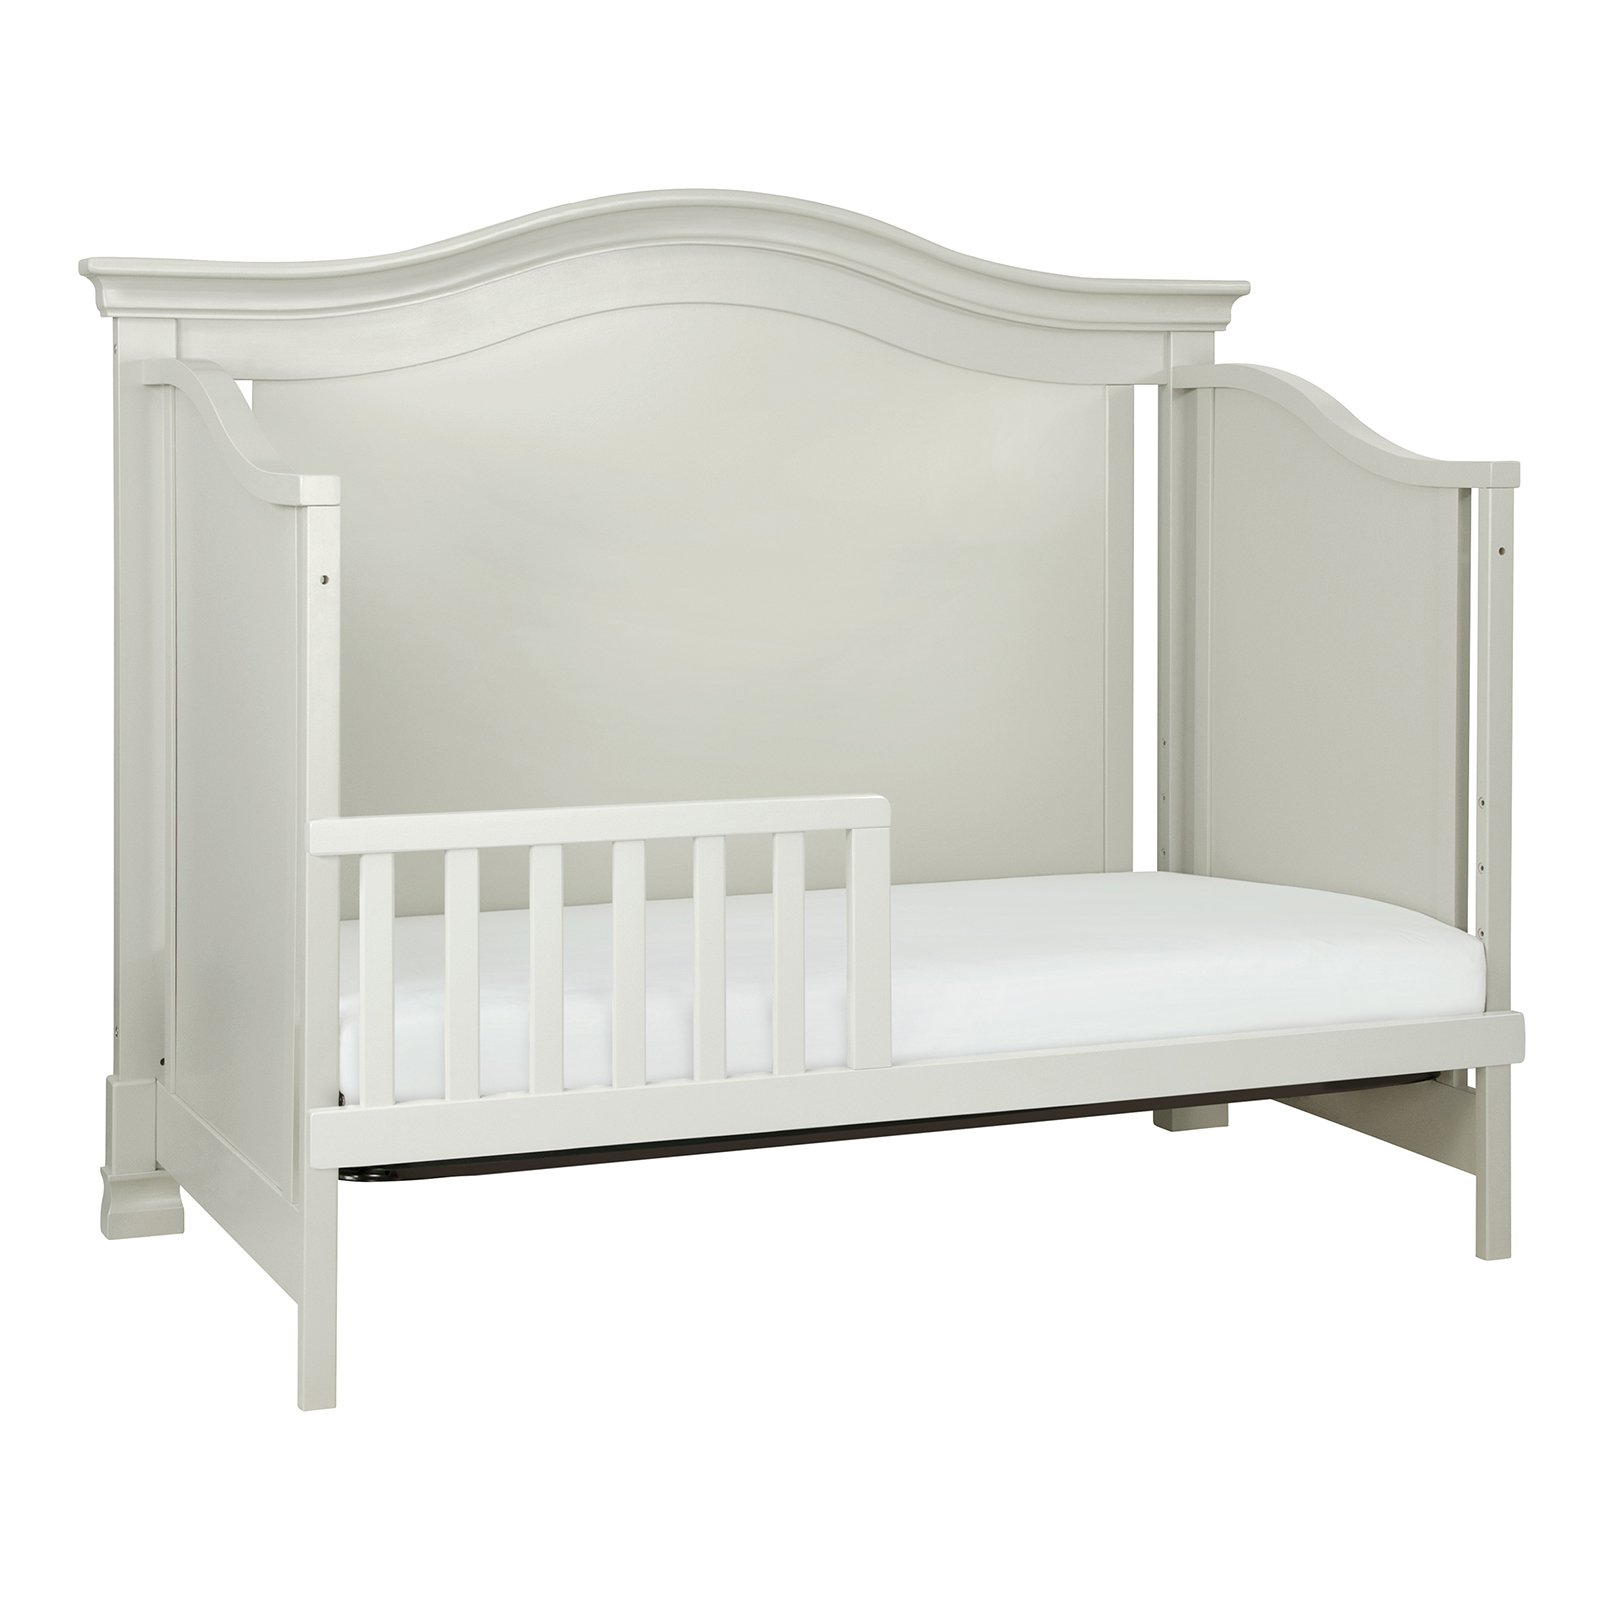 million dollar baby classic louis 4 in 1 convertible crib - White Baby Crib